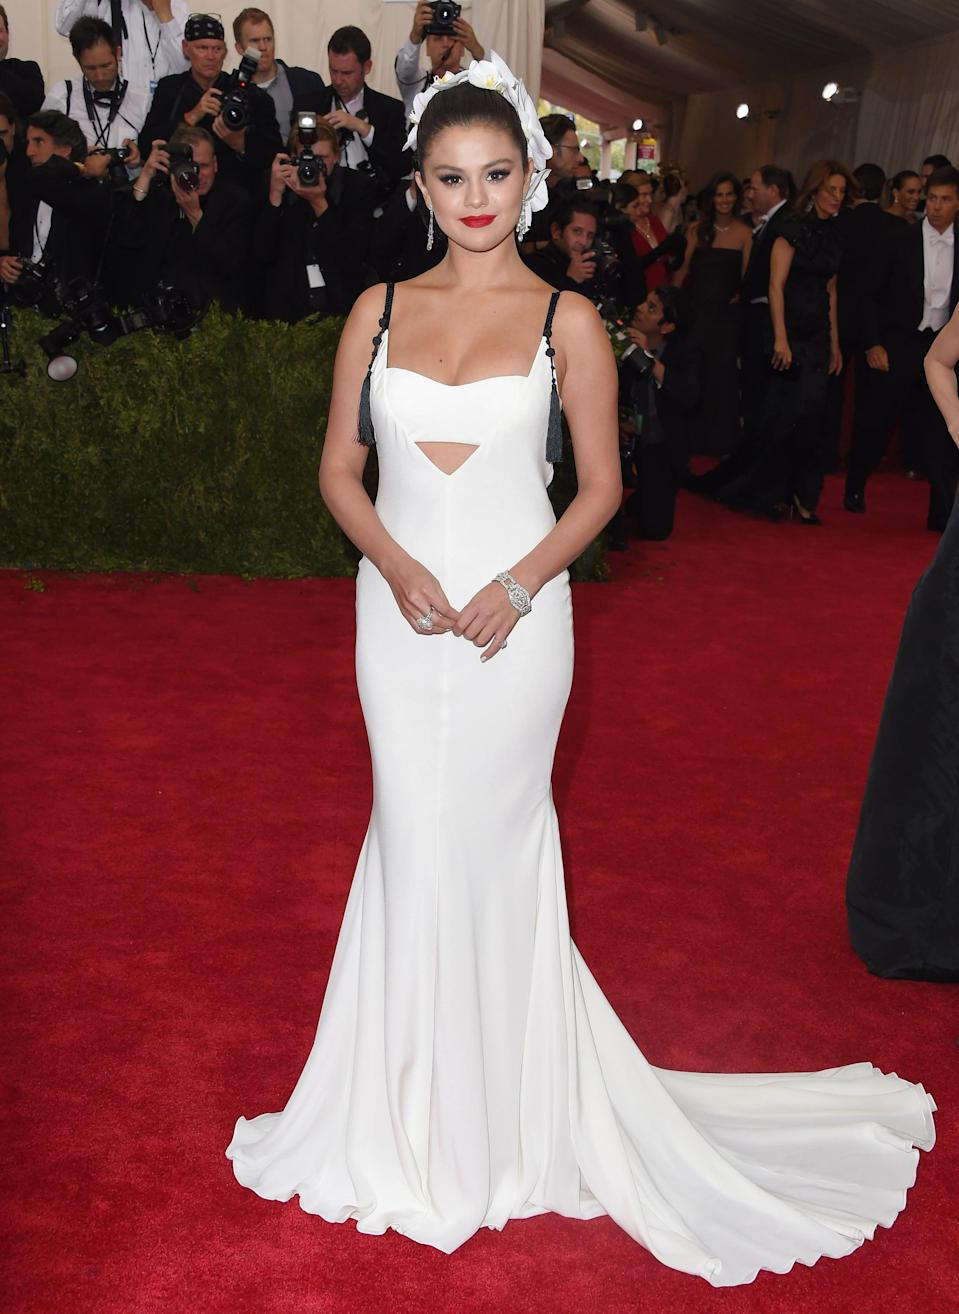 """<p>Selena <a href=""""https://www.popsugar.com/celebrity/Selena-Gomez-Met-Gala-2015-Pictures-37411357"""" class=""""link rapid-noclick-resp"""" rel=""""nofollow noopener"""" target=""""_blank"""" data-ylk=""""slk:stole the show at the Met Gala"""">stole the show at the Met Gala</a> in a backless white Vera Wang gown. It's official, folks: she's all grown up.</p>"""